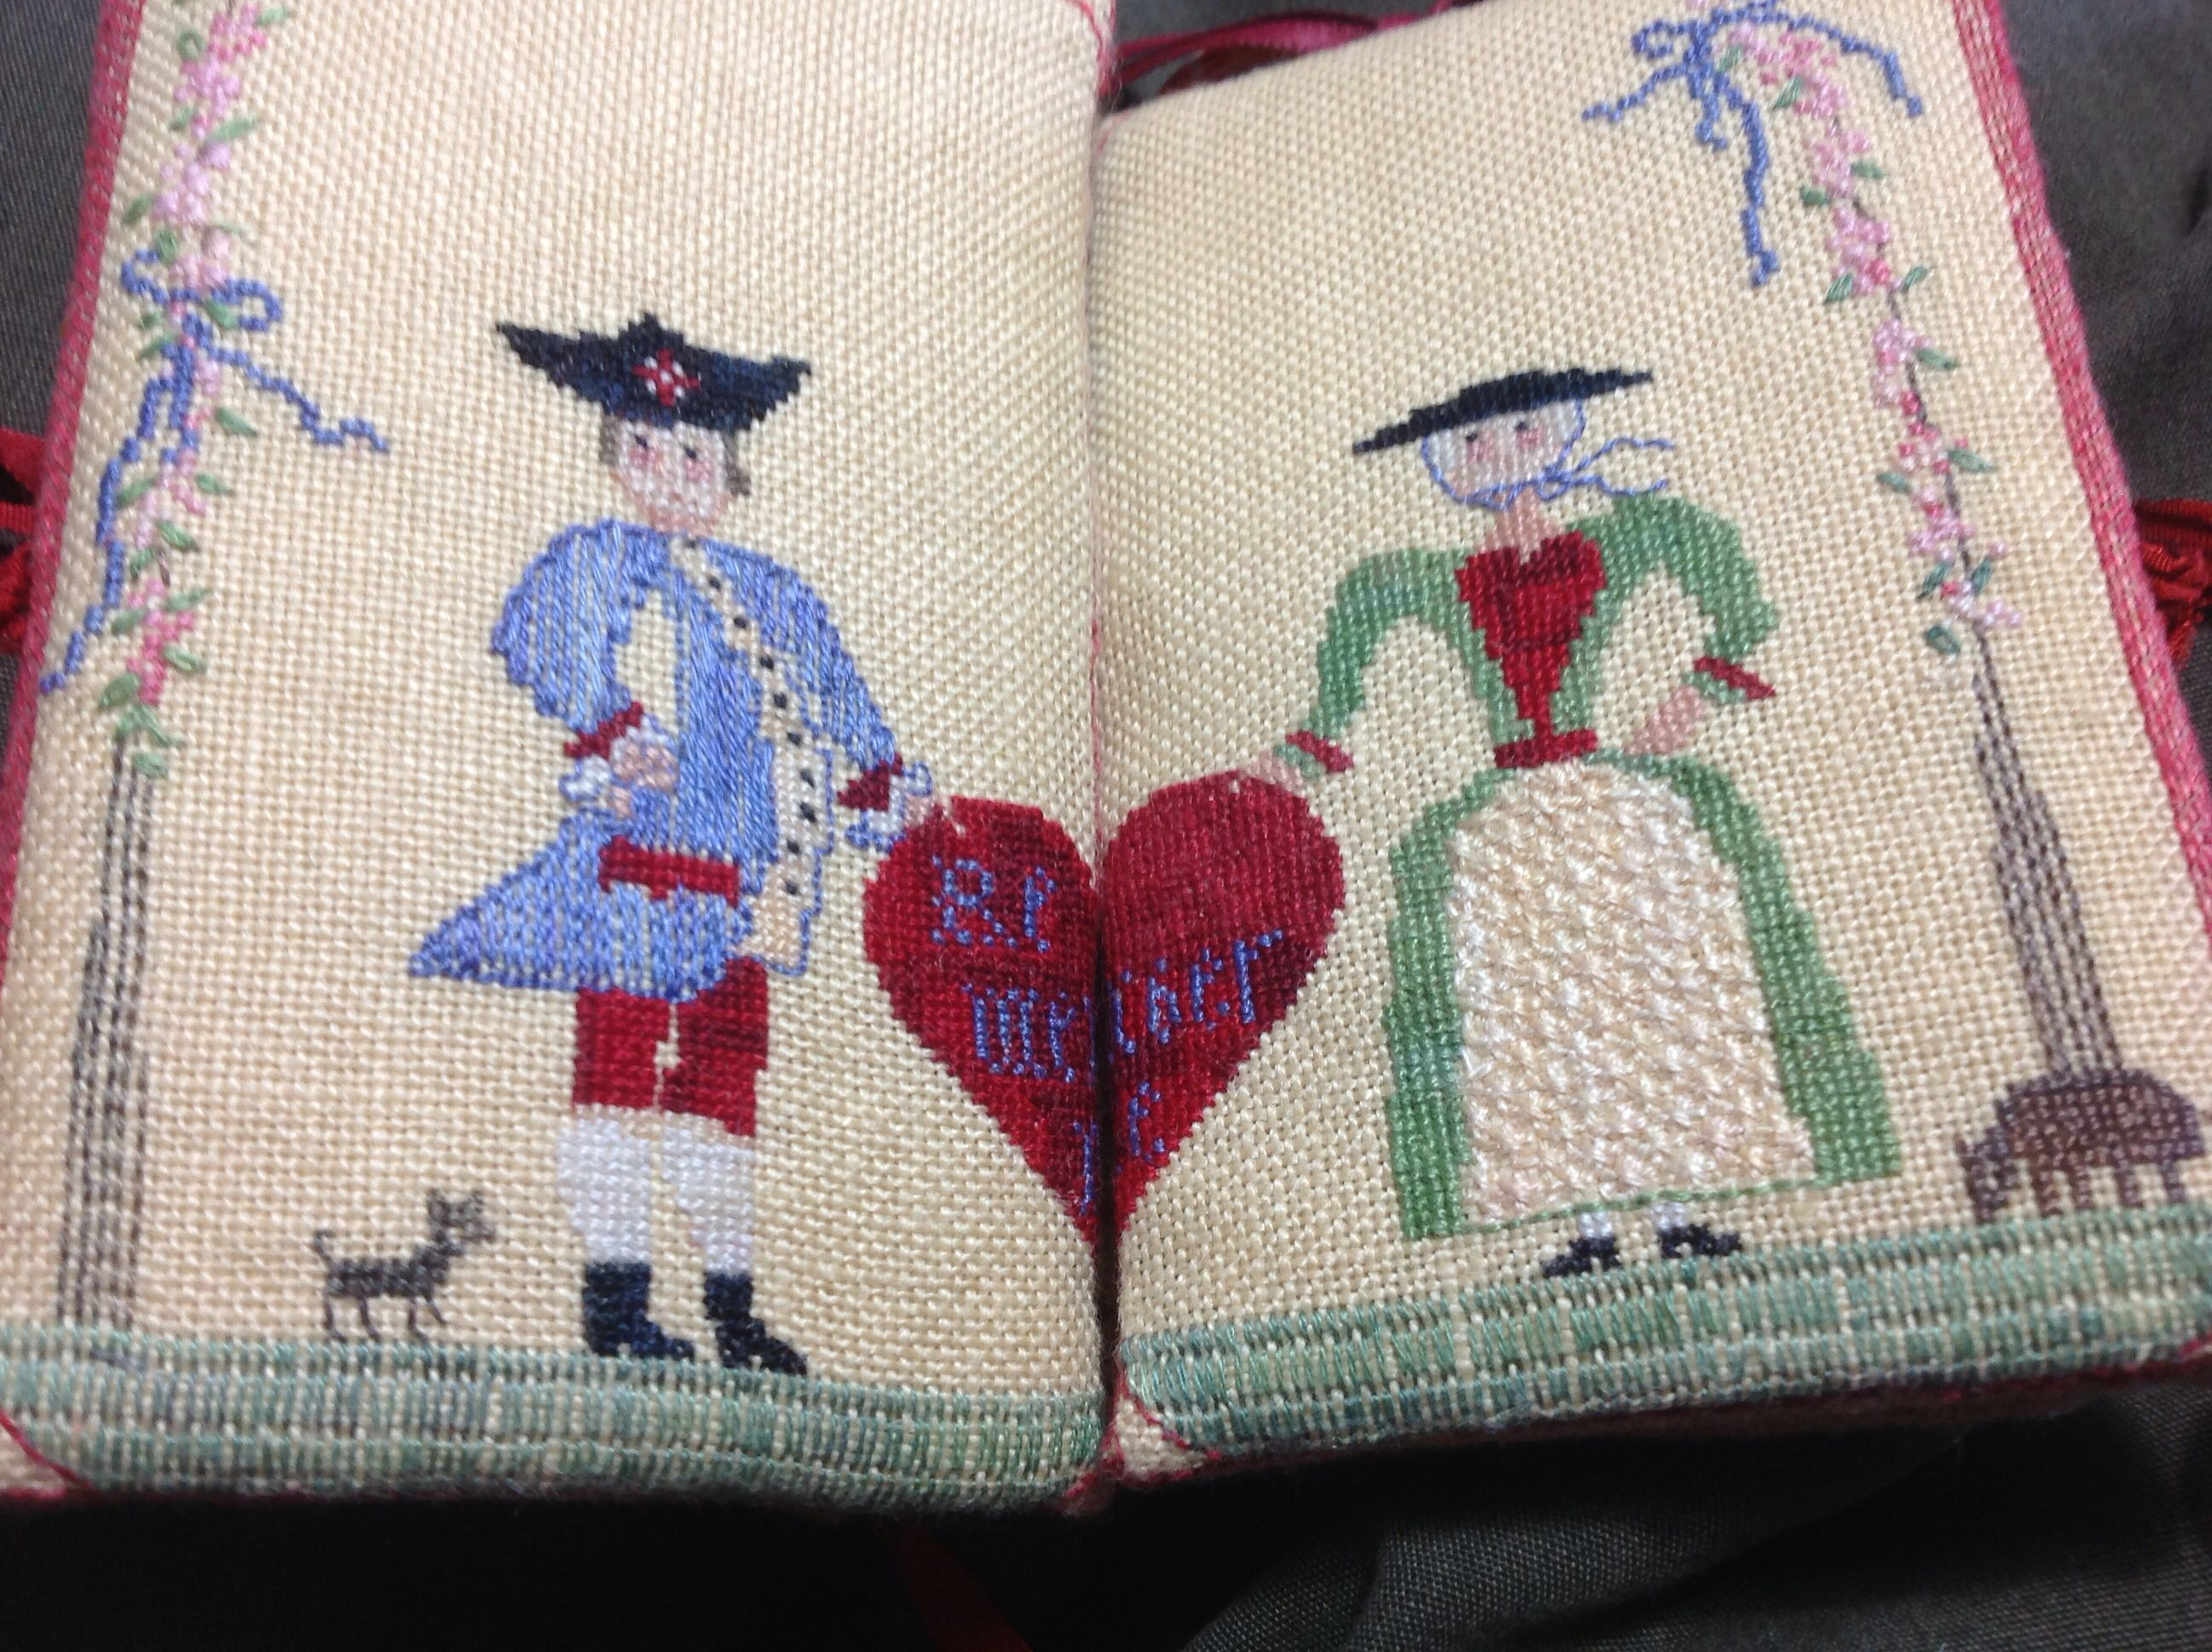 Forget Me Not In Stitches Hearts Sewing Case First Inside Open Stitched By Penelope Darby Sewing Case Needlework Cross Stitch